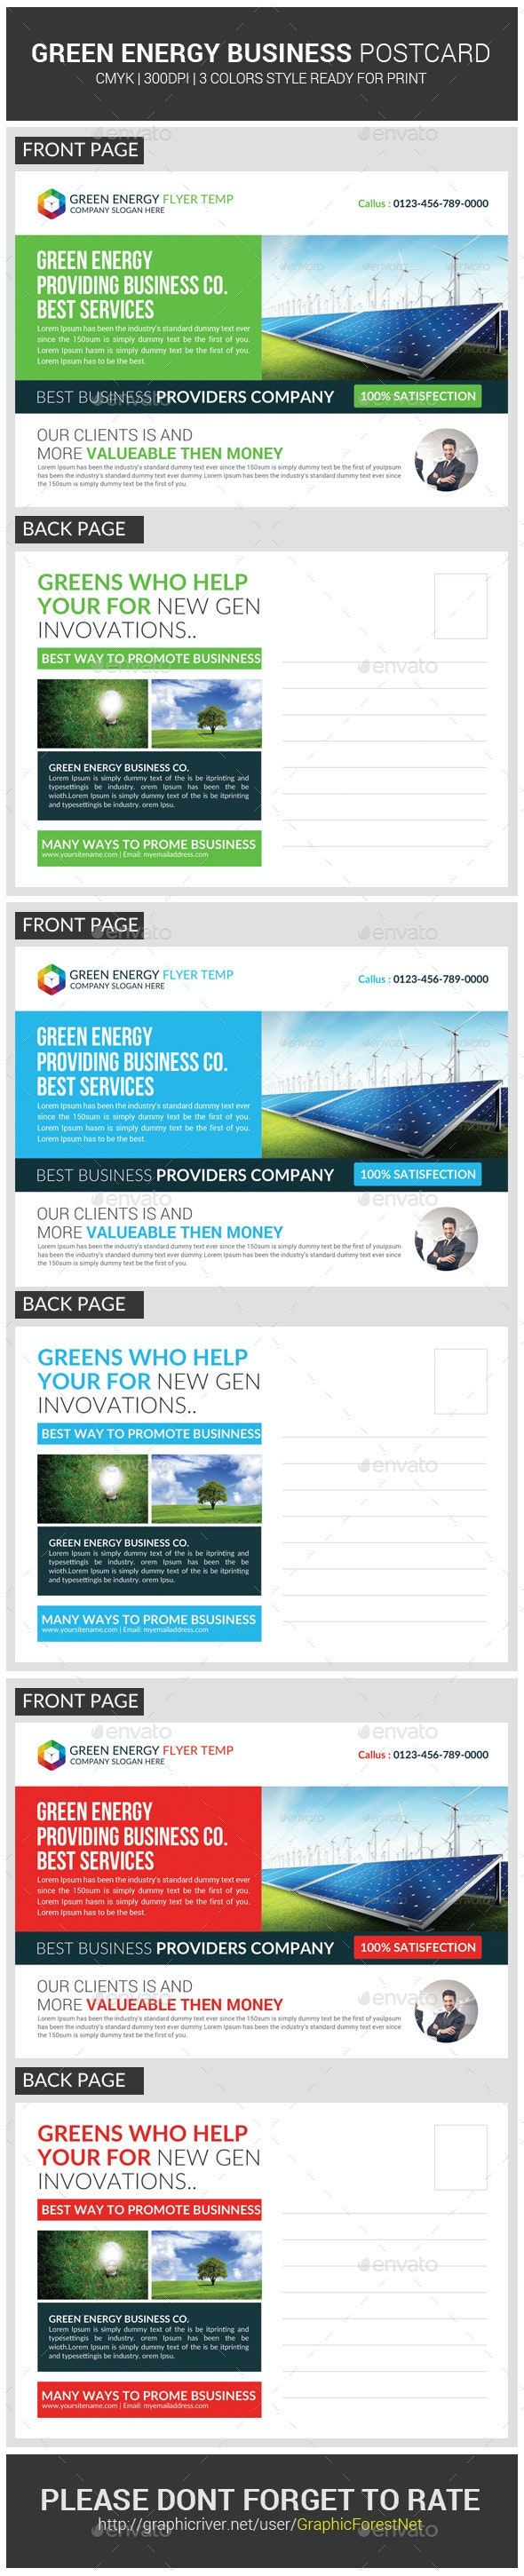 Green Energy Business Postcard Template - Cards & Invites Print Templates